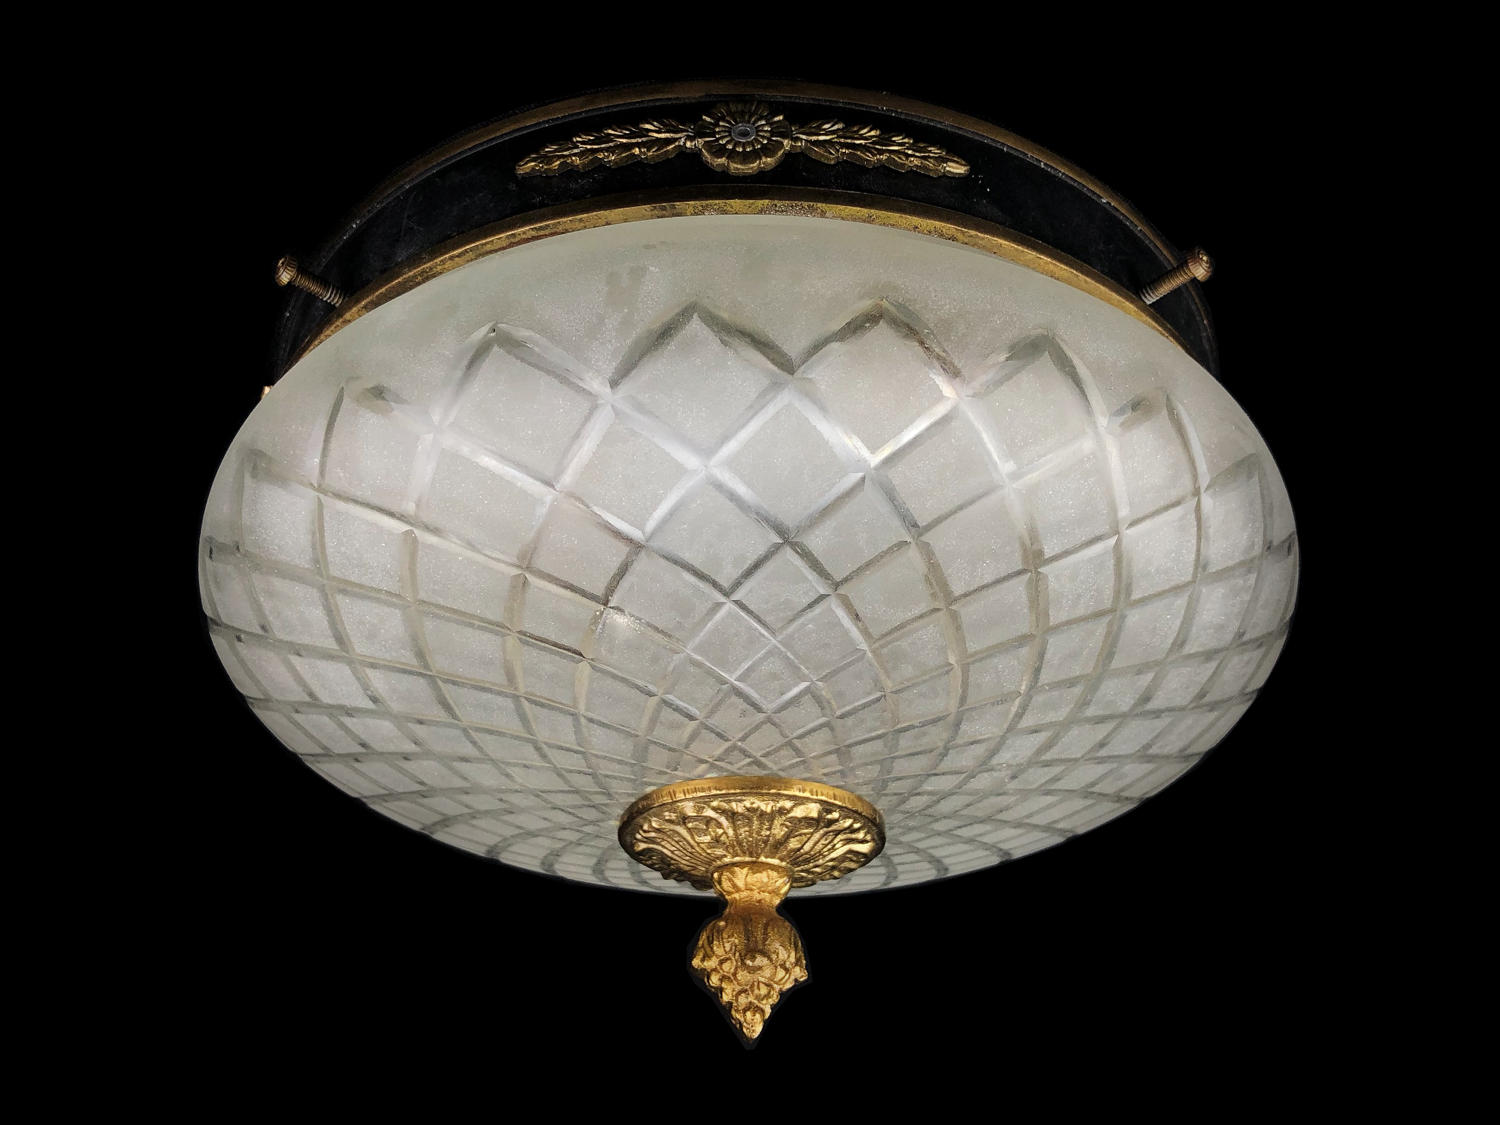 An Empire revival style ceiling light